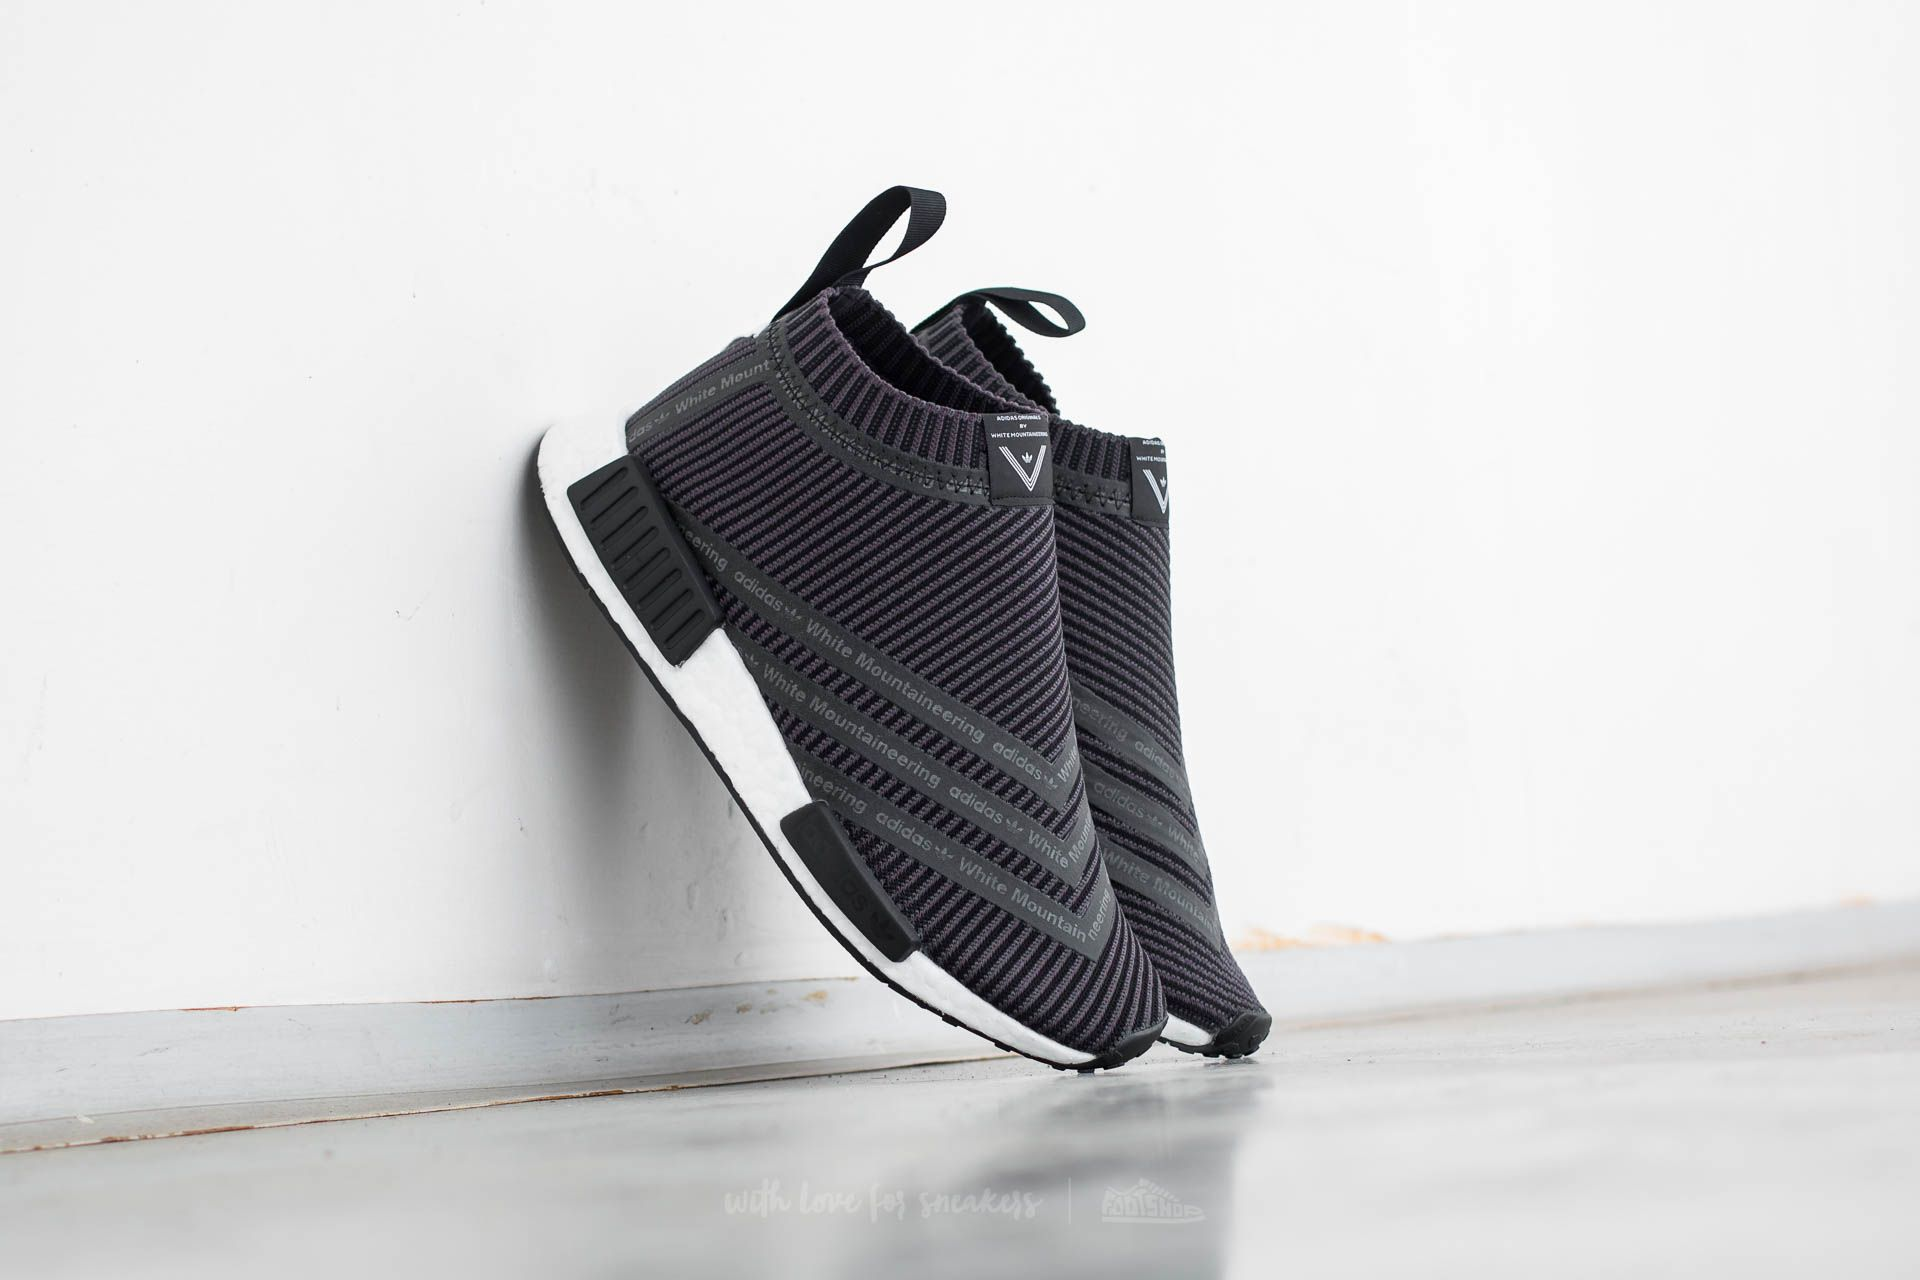 ca1e1c388f adidas x White Mountaineering NMD City Sock. Utility Black  Solid Grey  Core  Black